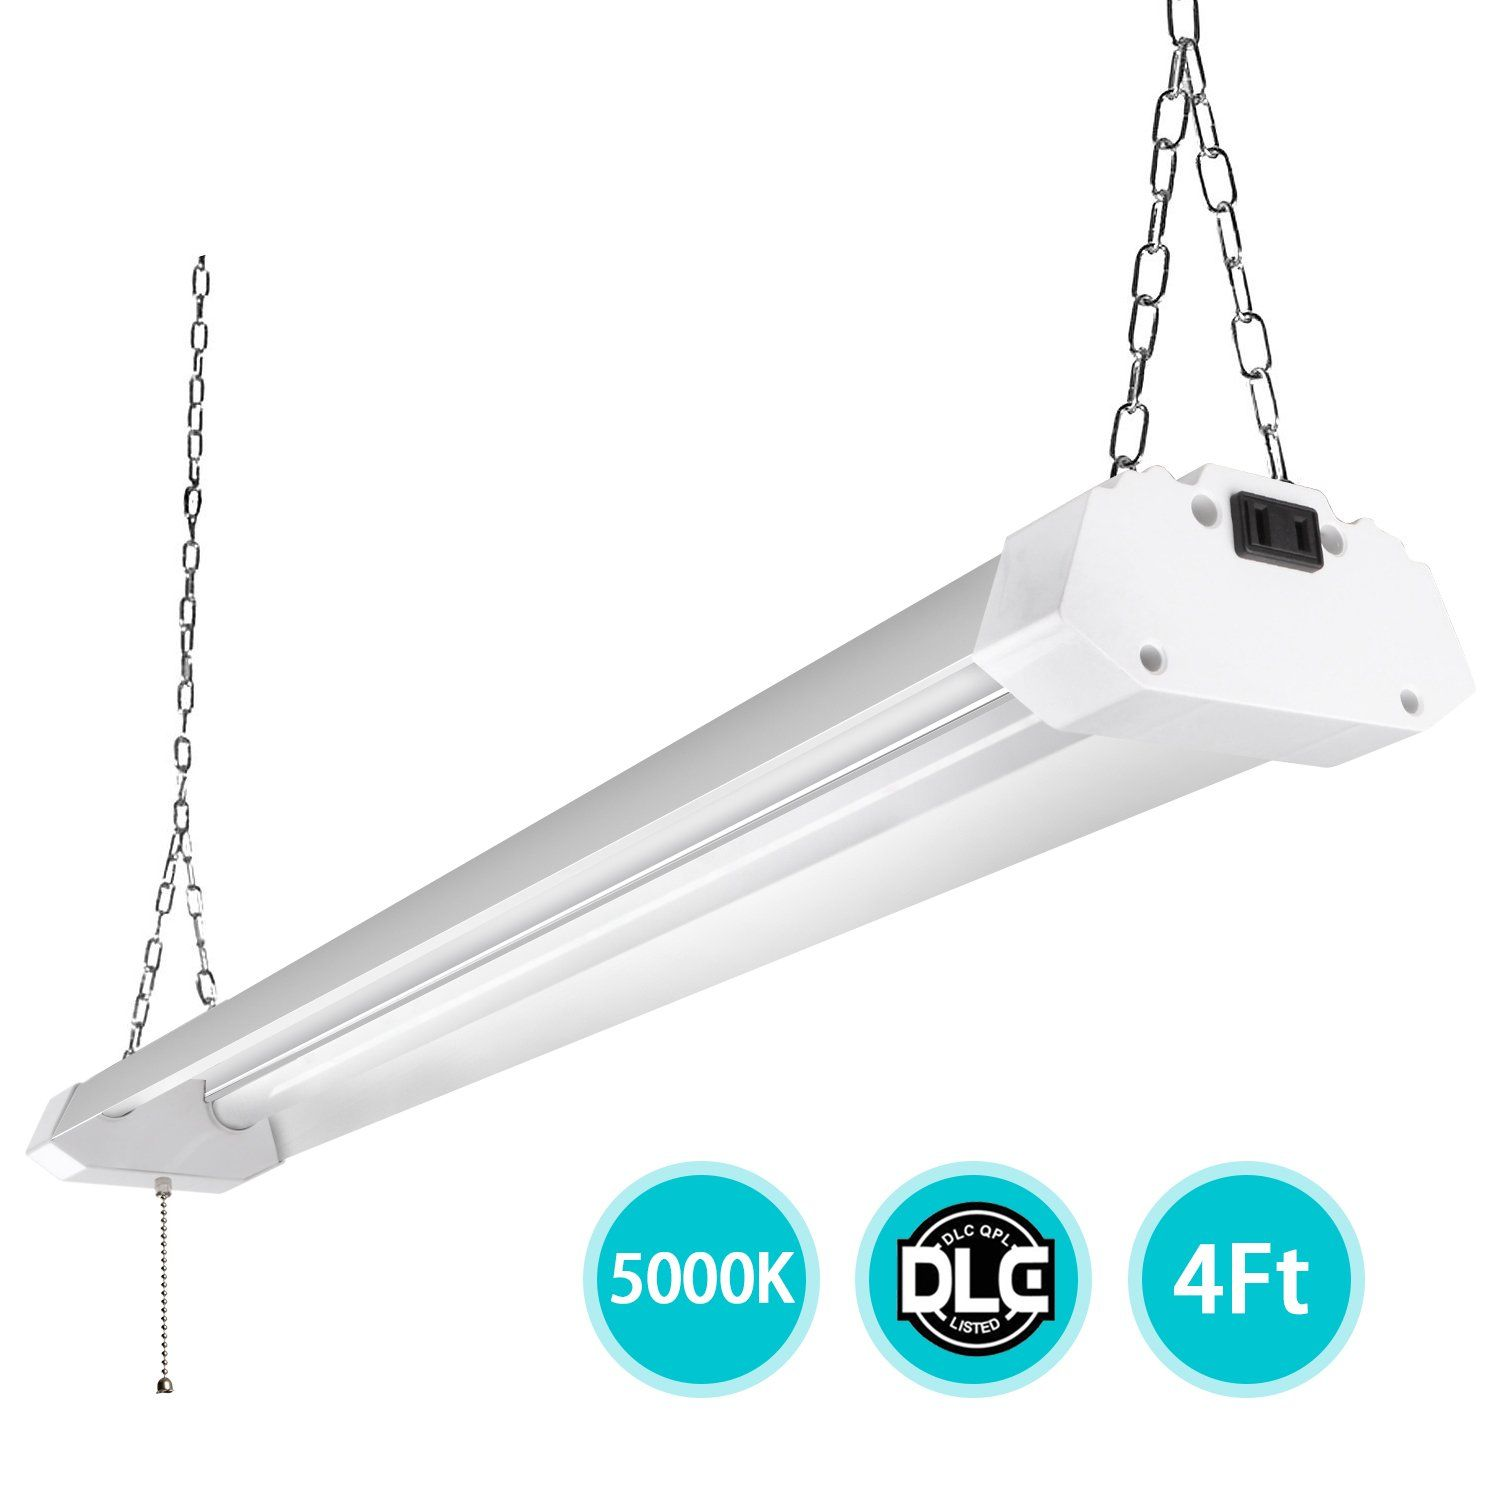 4ft led utility shop lights for garage 40w bright plug in led shop 4ft led utility shop lights for garage 40w bright plug in led shop light arubaitofo Choice Image